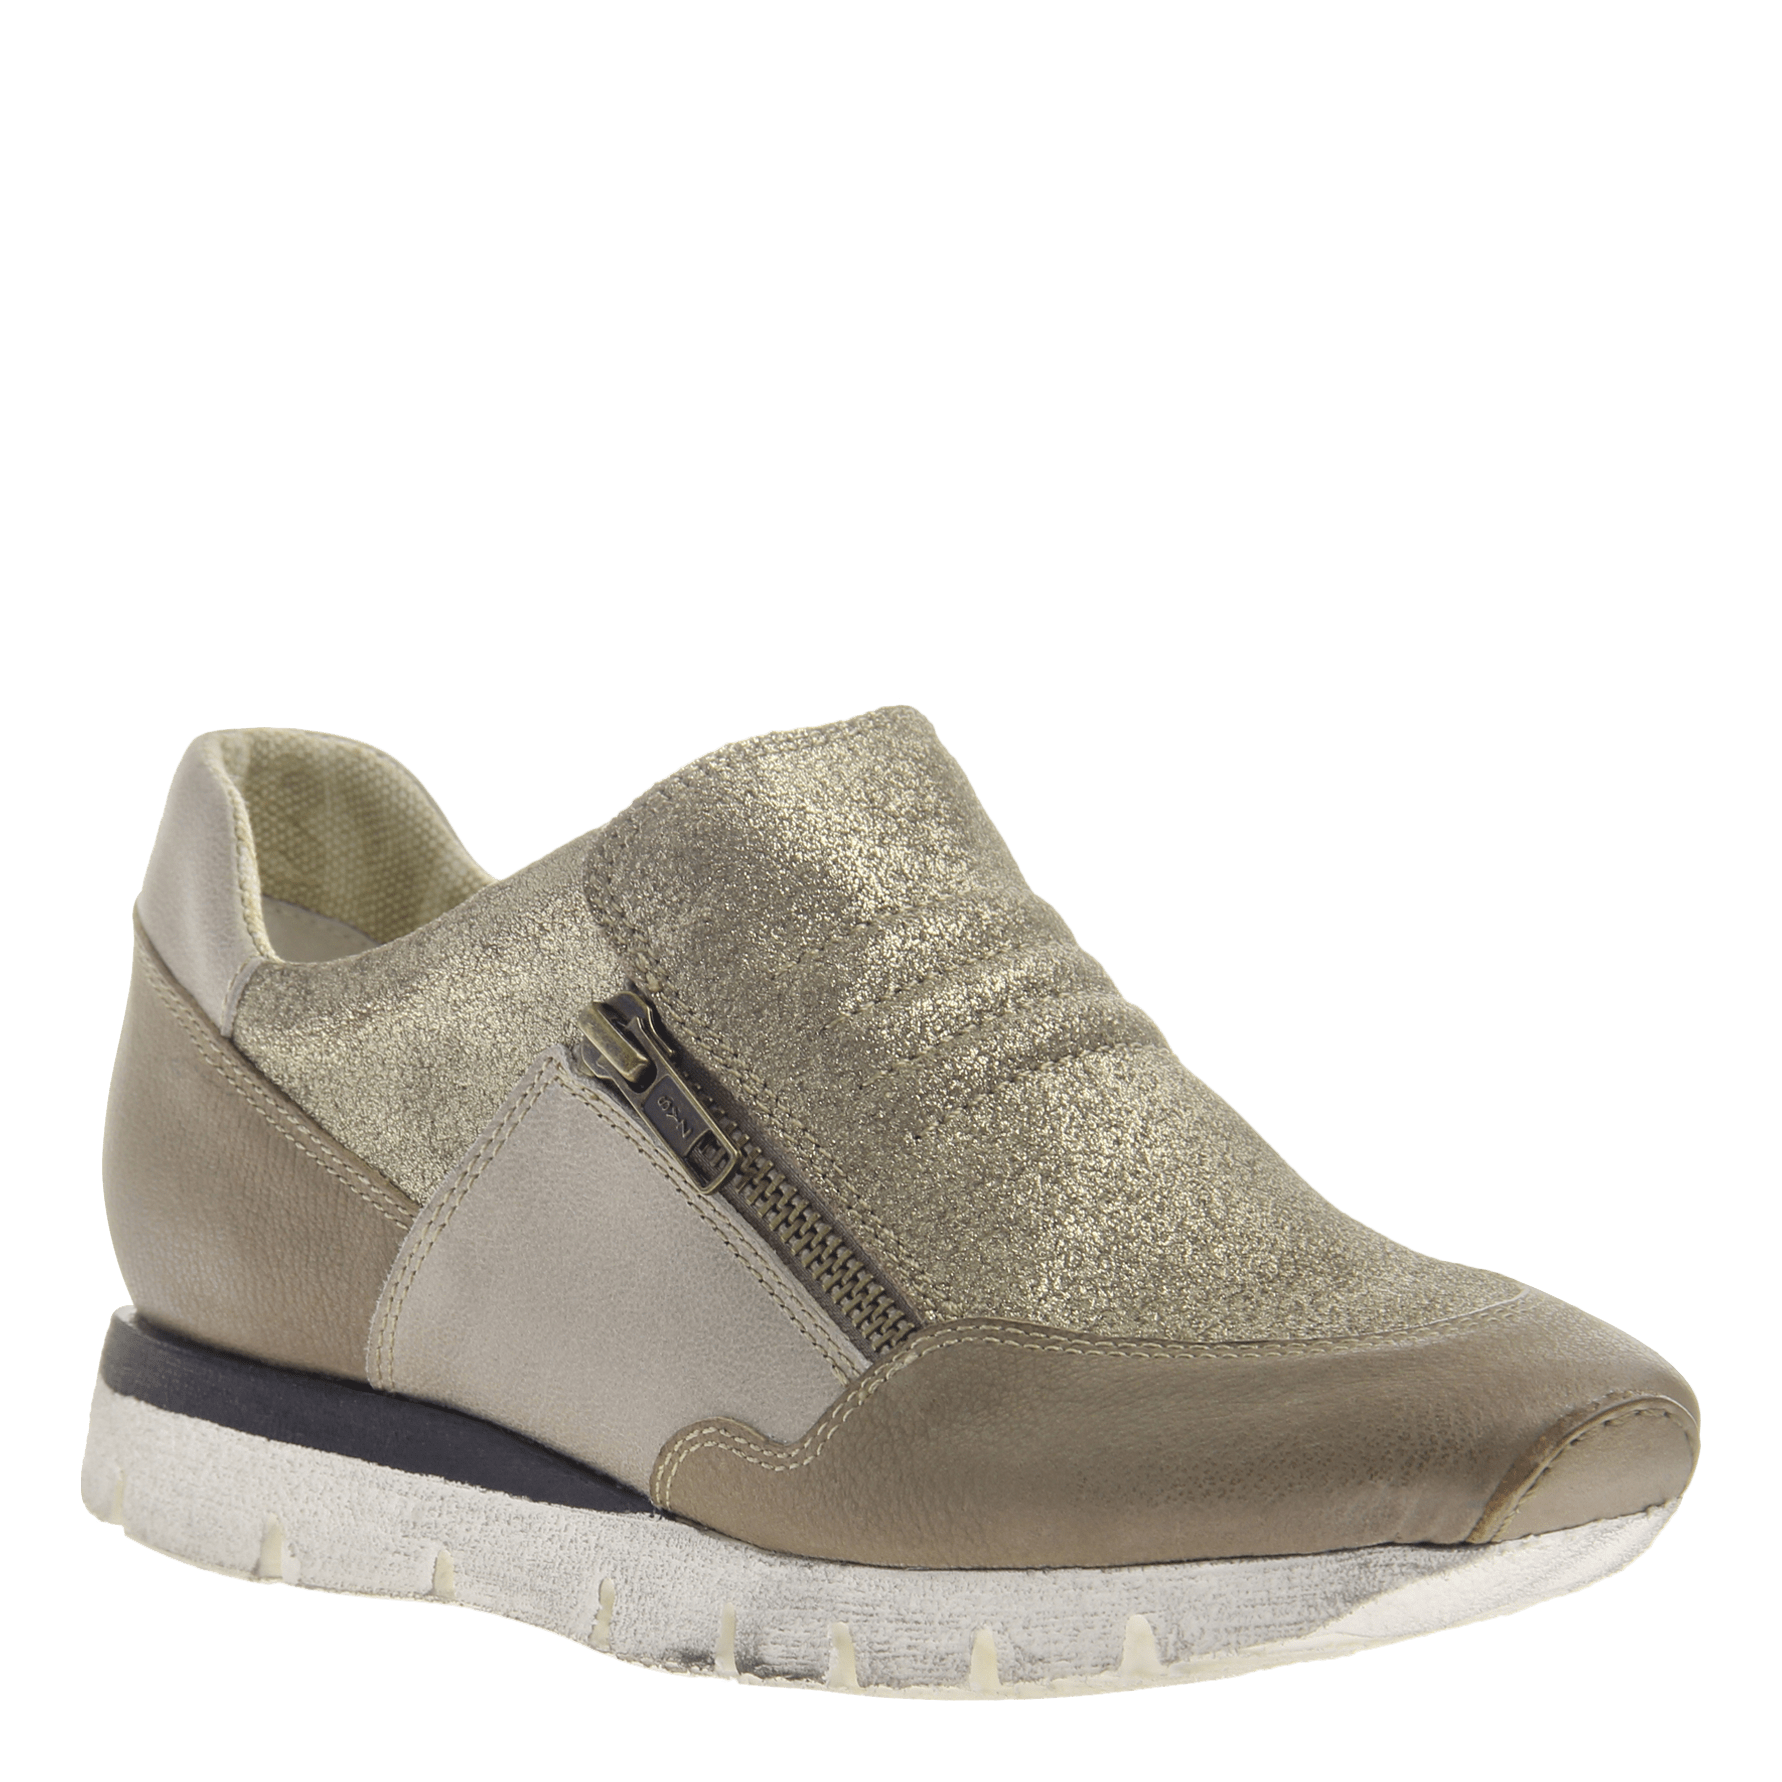 Sewell in elmwood women's sneaker